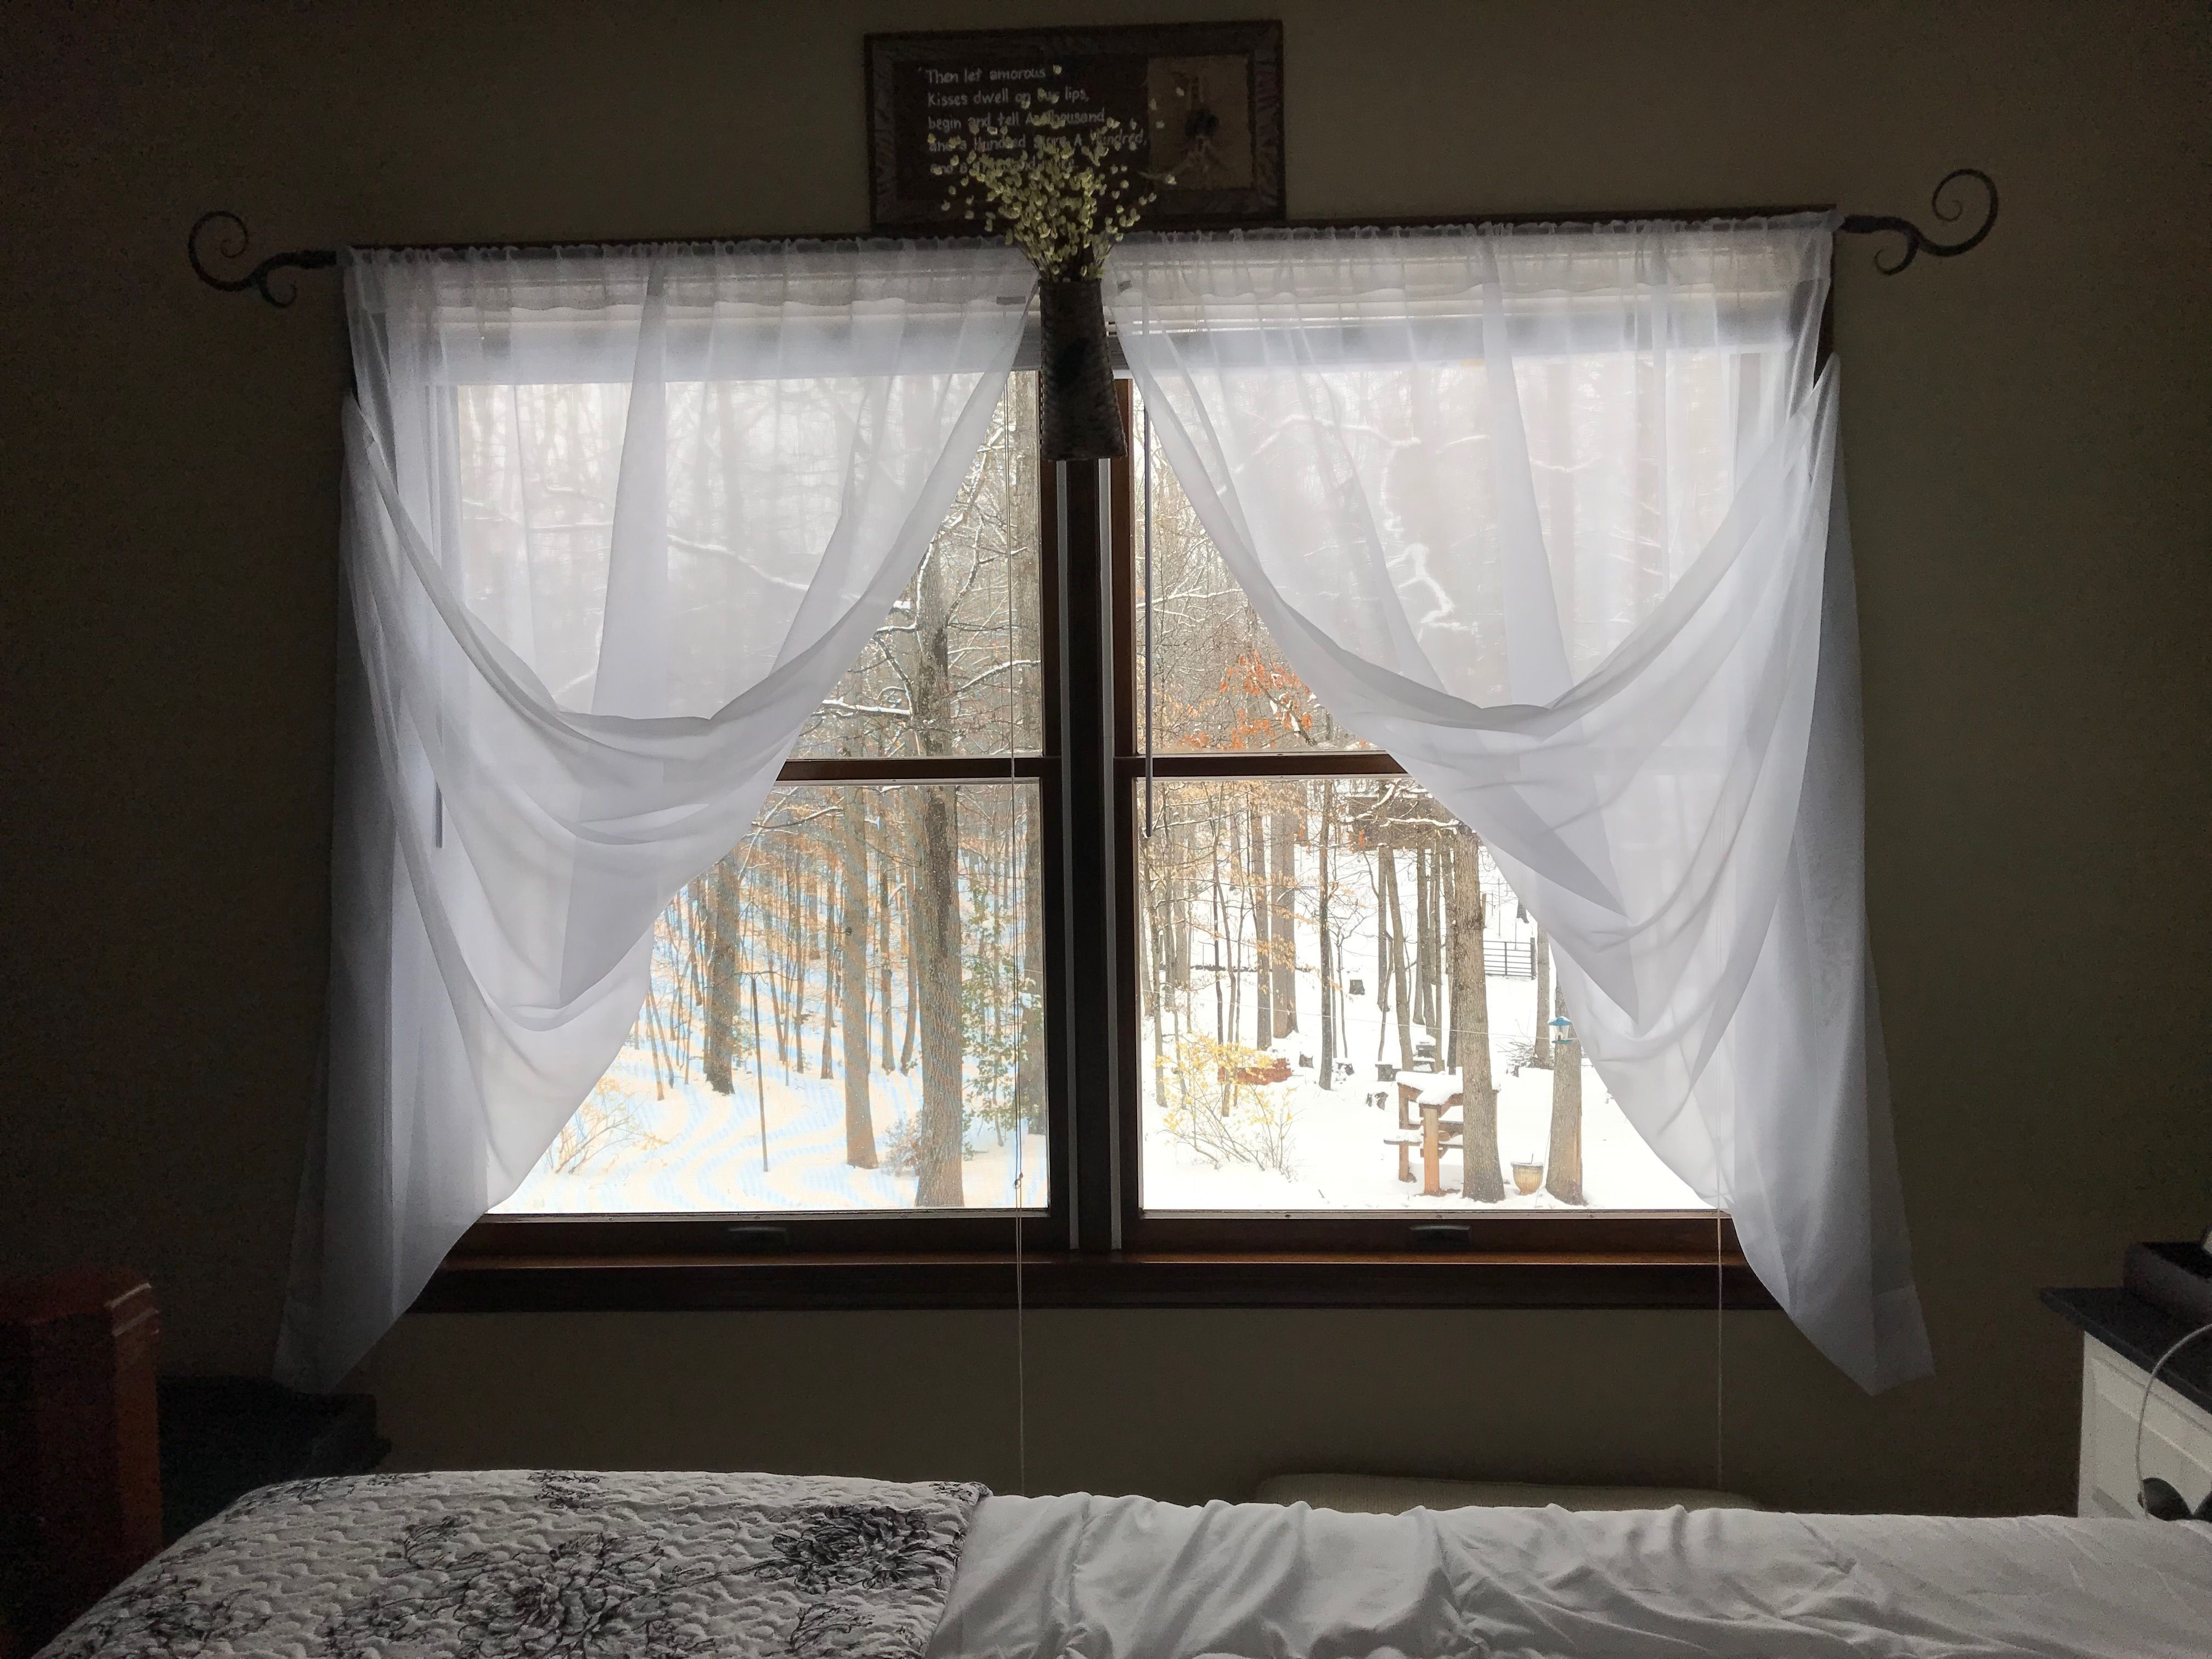 Window treatment ideas for 3 windows in a row  white sheets white paper flowers double window farmhouse bedroom